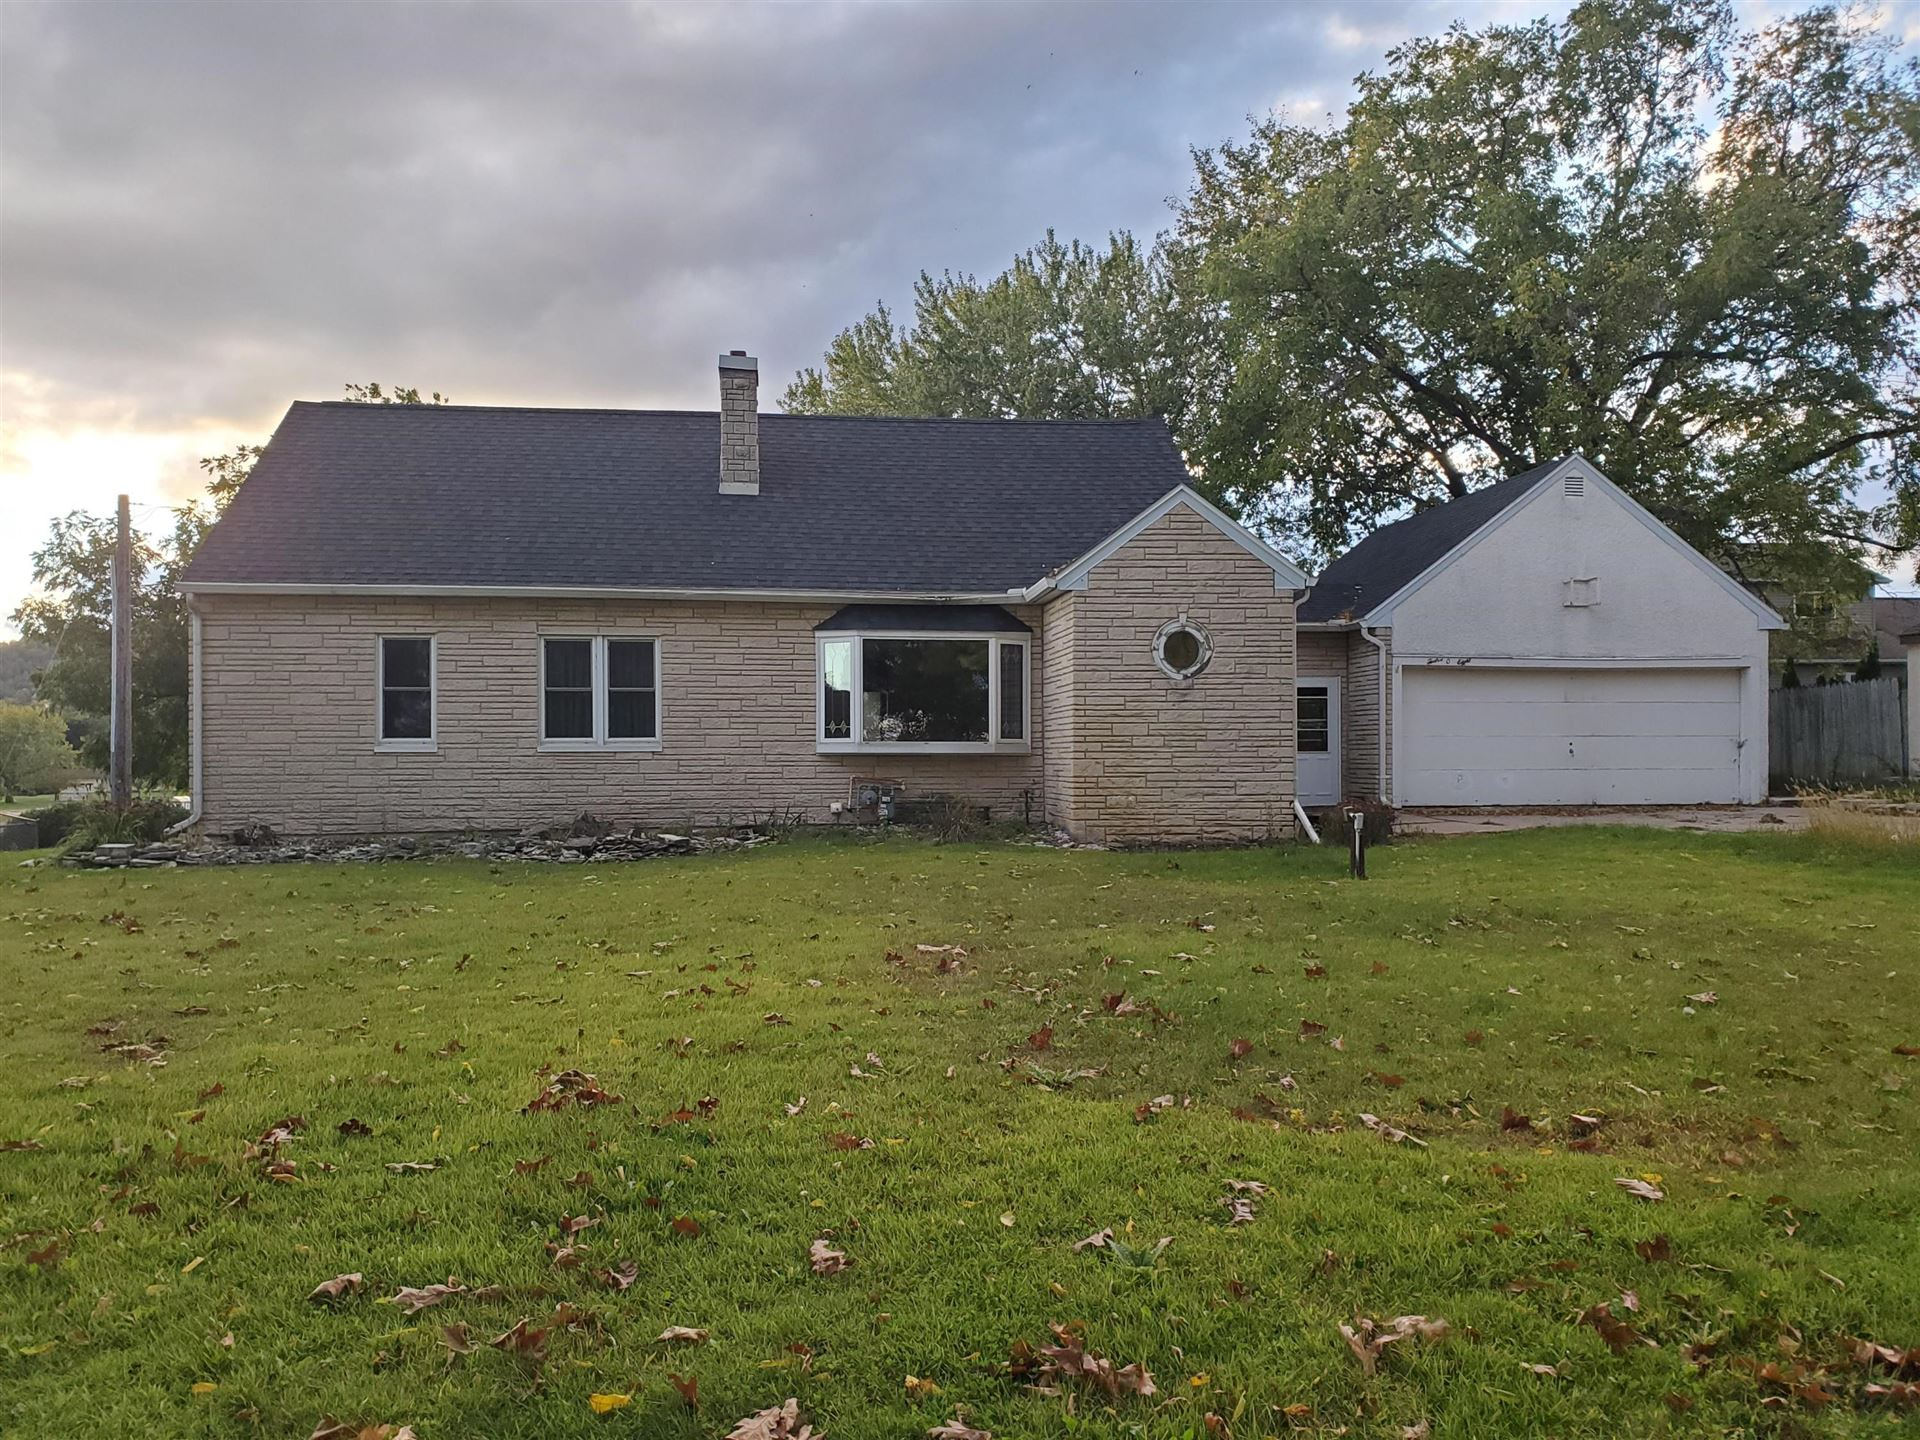 1208 Grandview Ter, La Crescent, MN 55947 - MLS#: 1712735